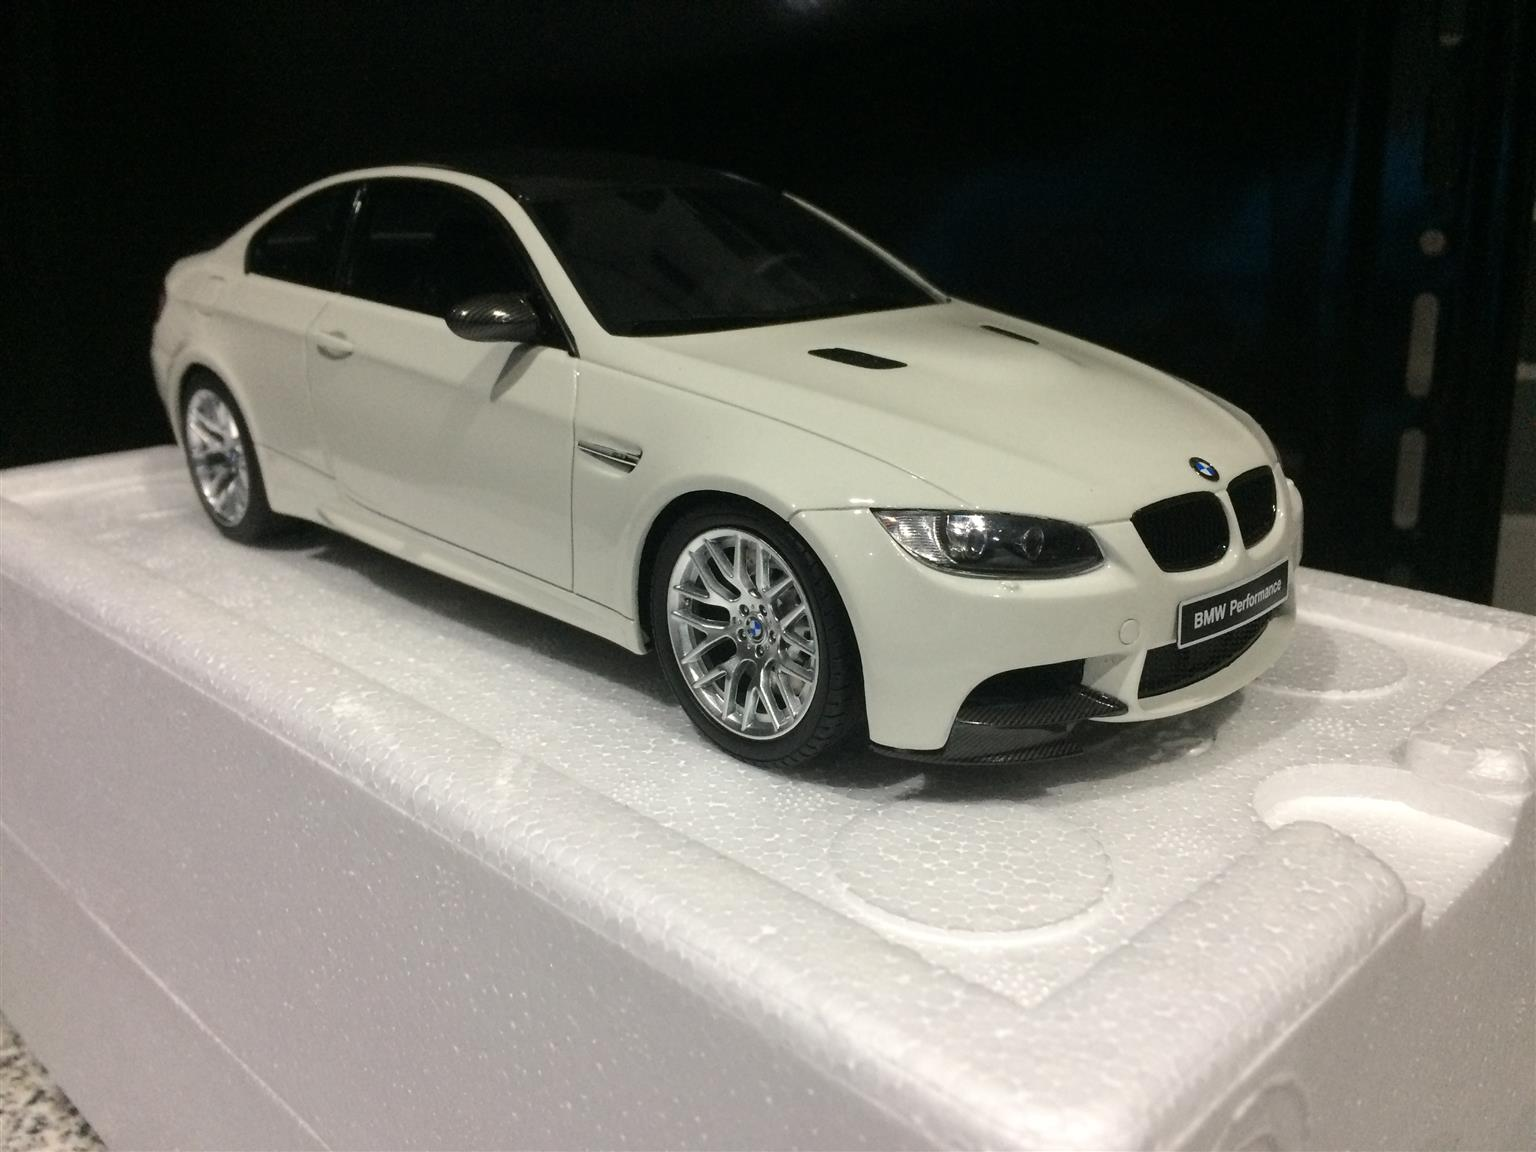 bmw e92 m3 model car - 1:18 - new in box - collectors item